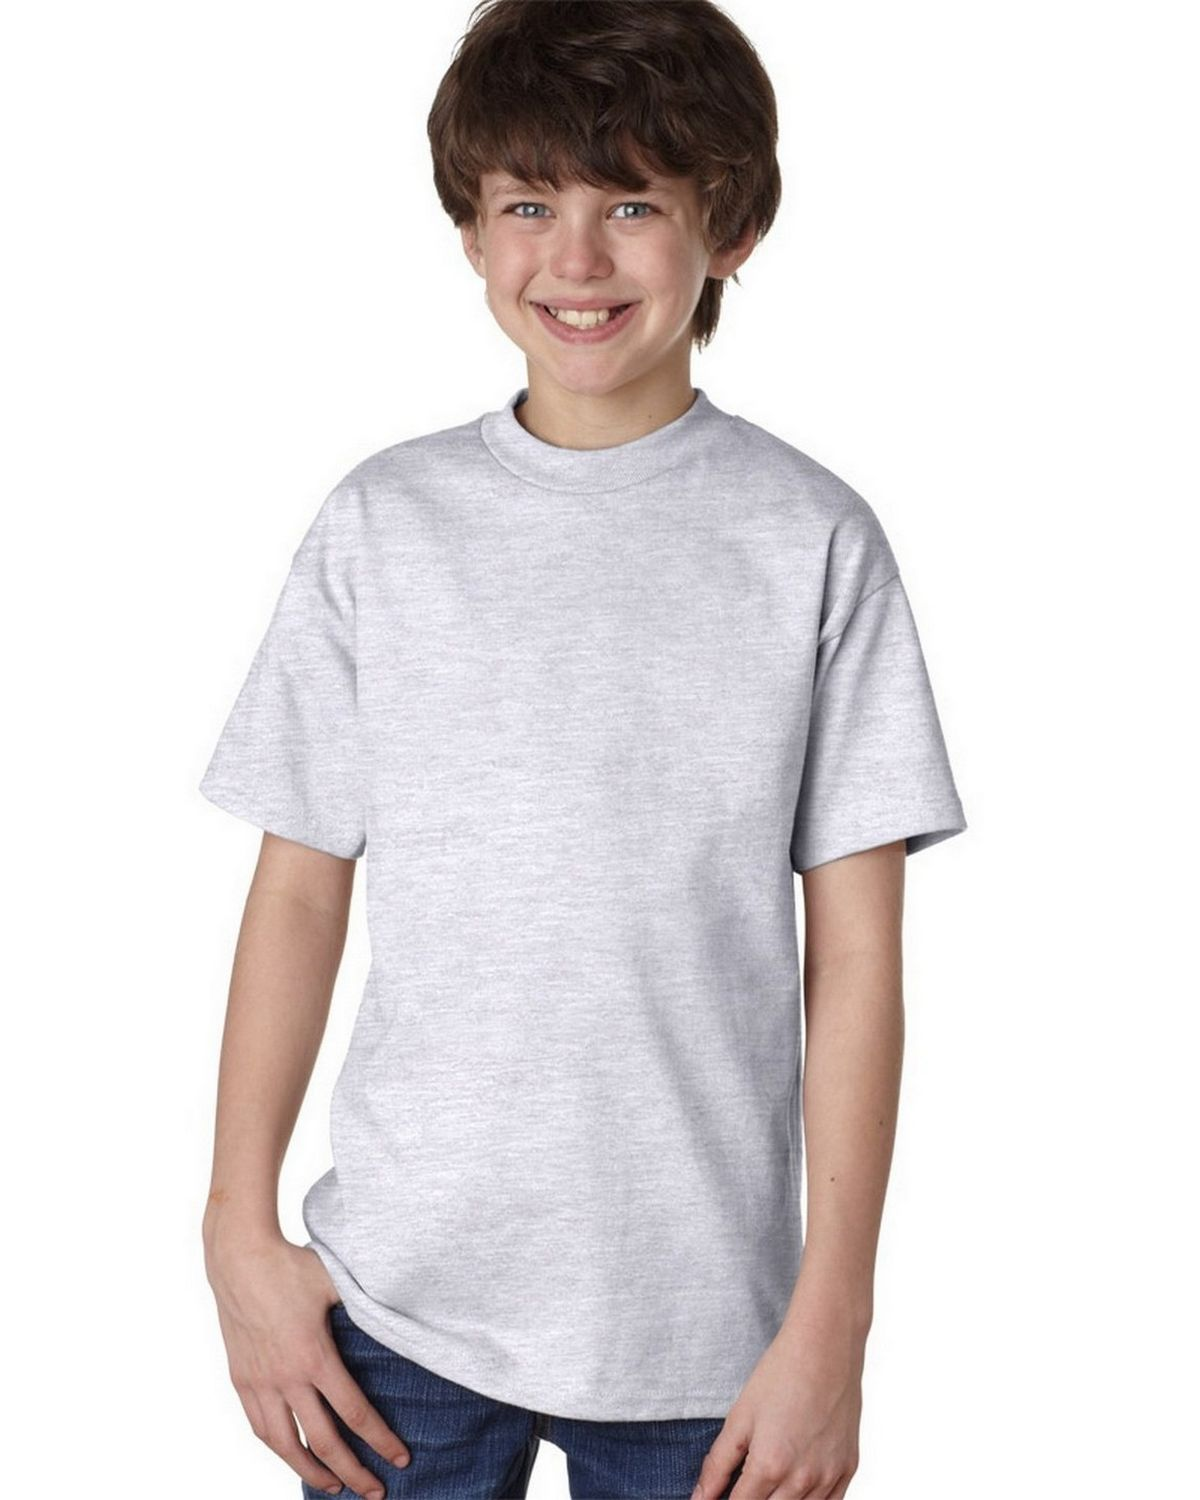 Hanes 5450 100% Youth Cotton Comfort Tee - Ash - S 5450